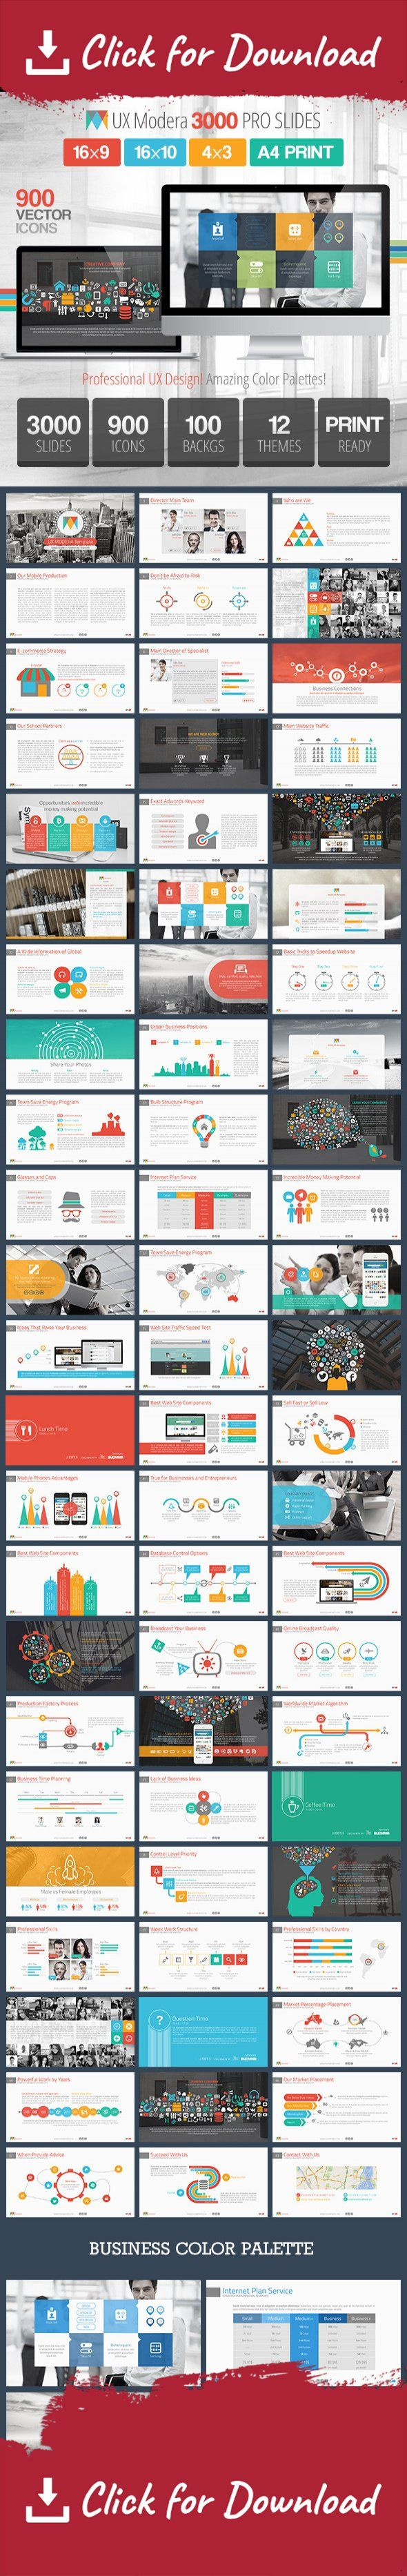 a4, analytics, blue, bright, business, chart, clean, company, corporate, creative, dark, eco, elegant, gallery, graphics, green, icon, interactive, light, mac, marketing, modern, professional, red, seo, social, strategy, table, vintage, wide  The current presentation enables its owners to work way faster and easier than ever before. If you are striving to present in a brilliant way and to amaze the audience with your work, you necessarily need this product. If you were a manager, who wants…